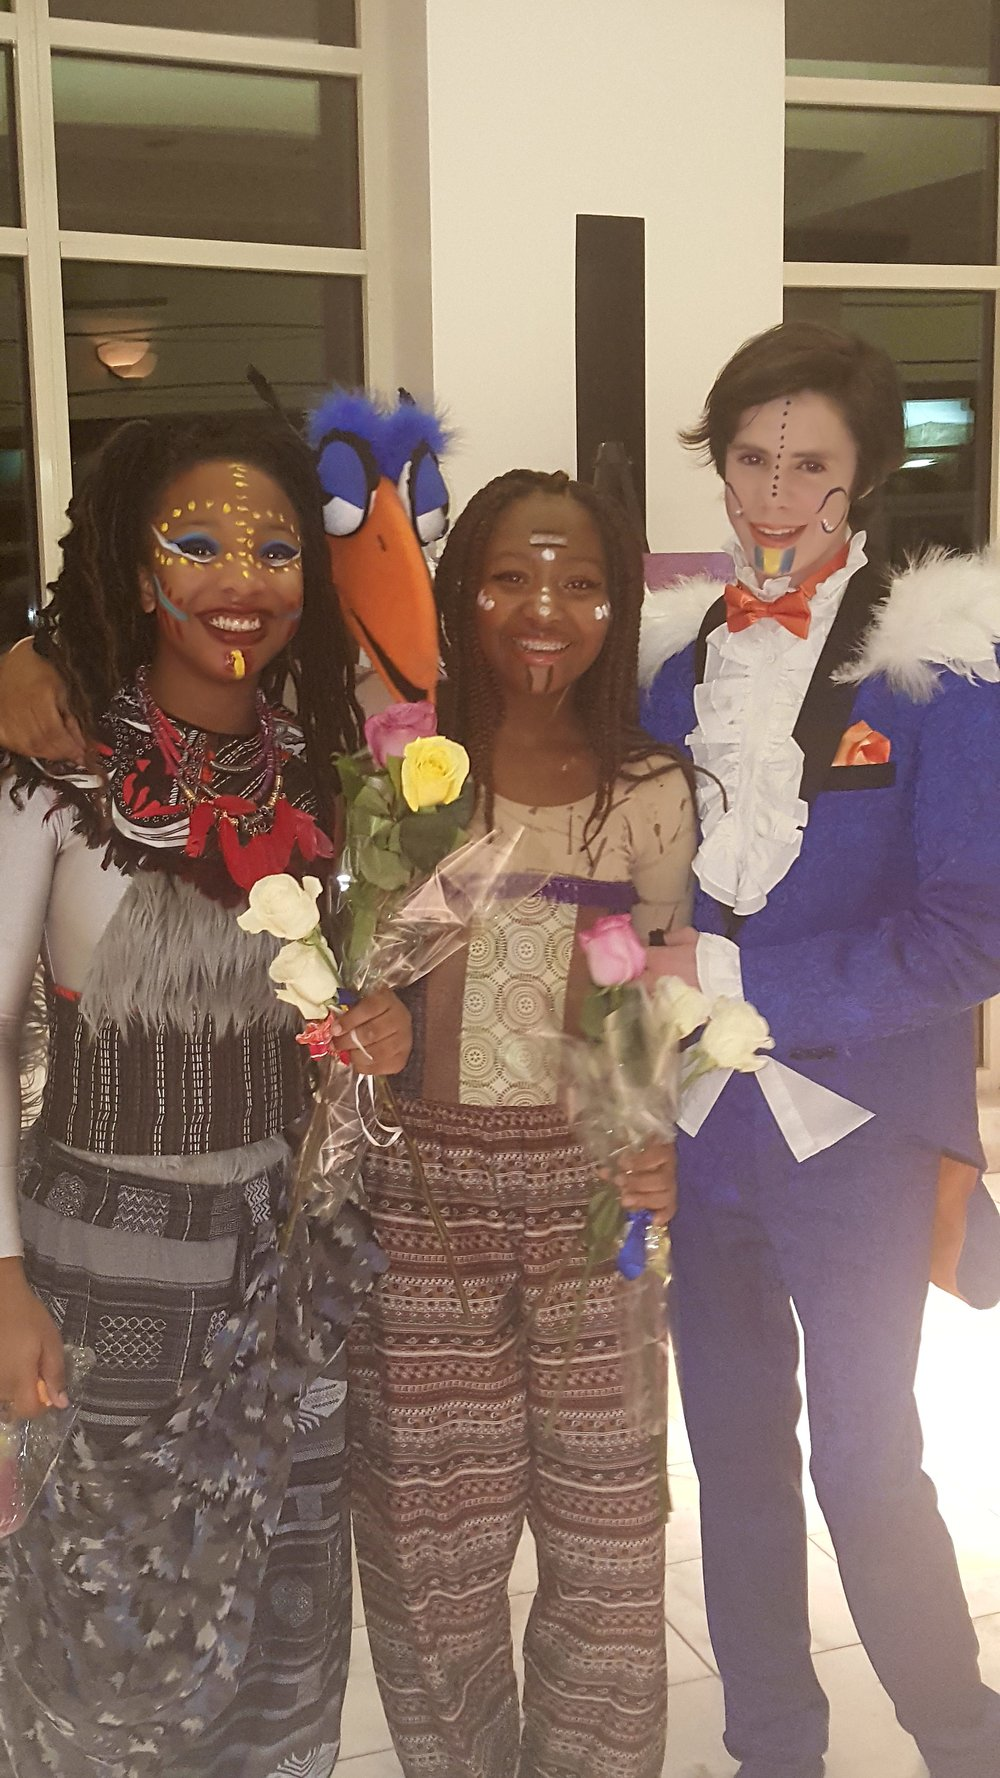 Asata and friends after the Lion King